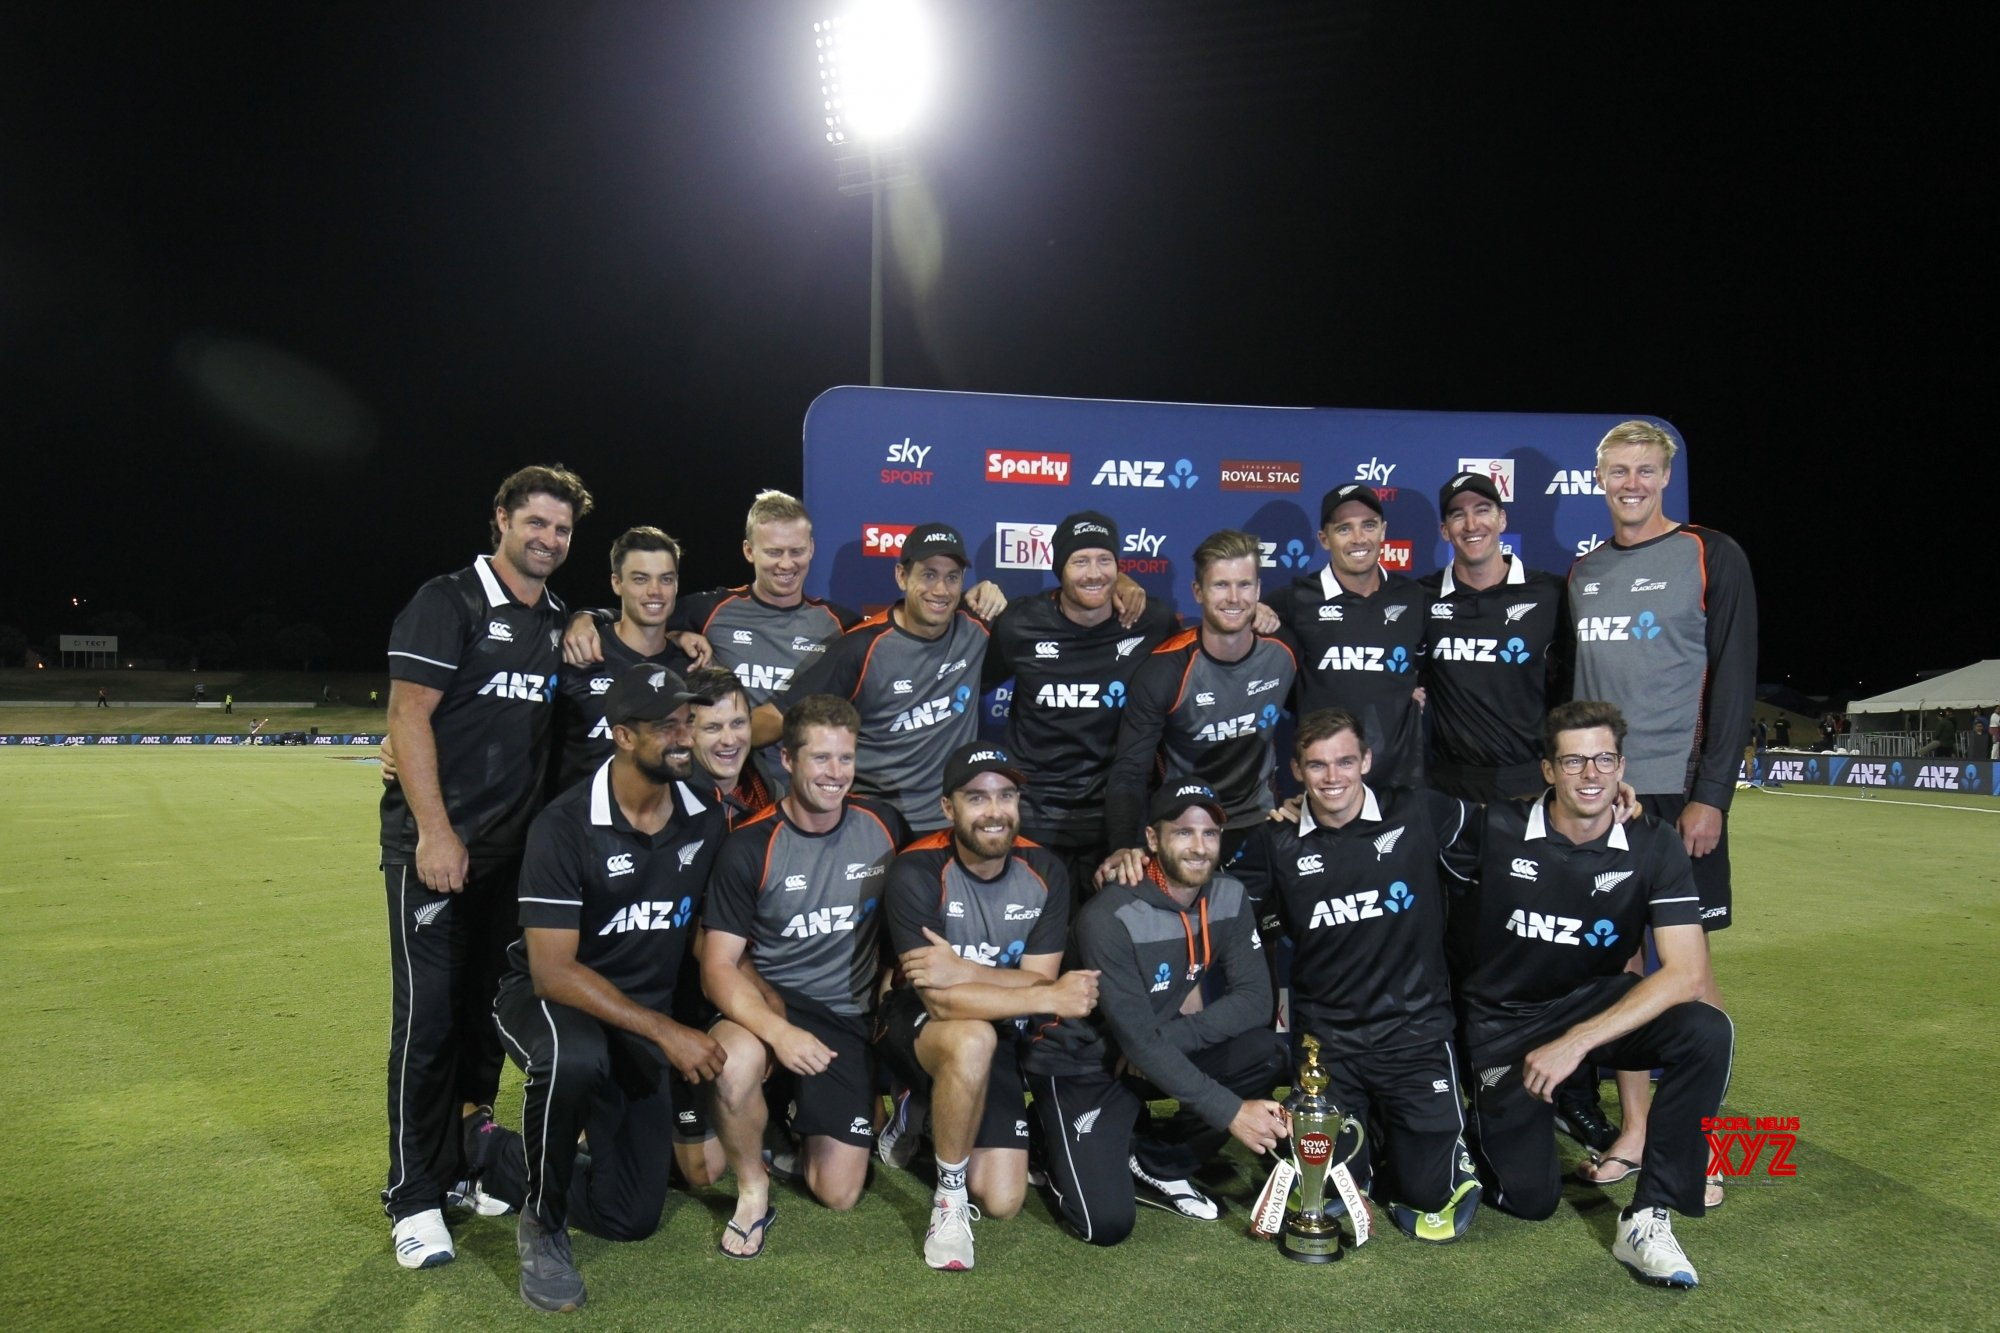 Mount Maunganui: 3rd ODI - India Vs New Zealand (Batch - 13) #Gallery